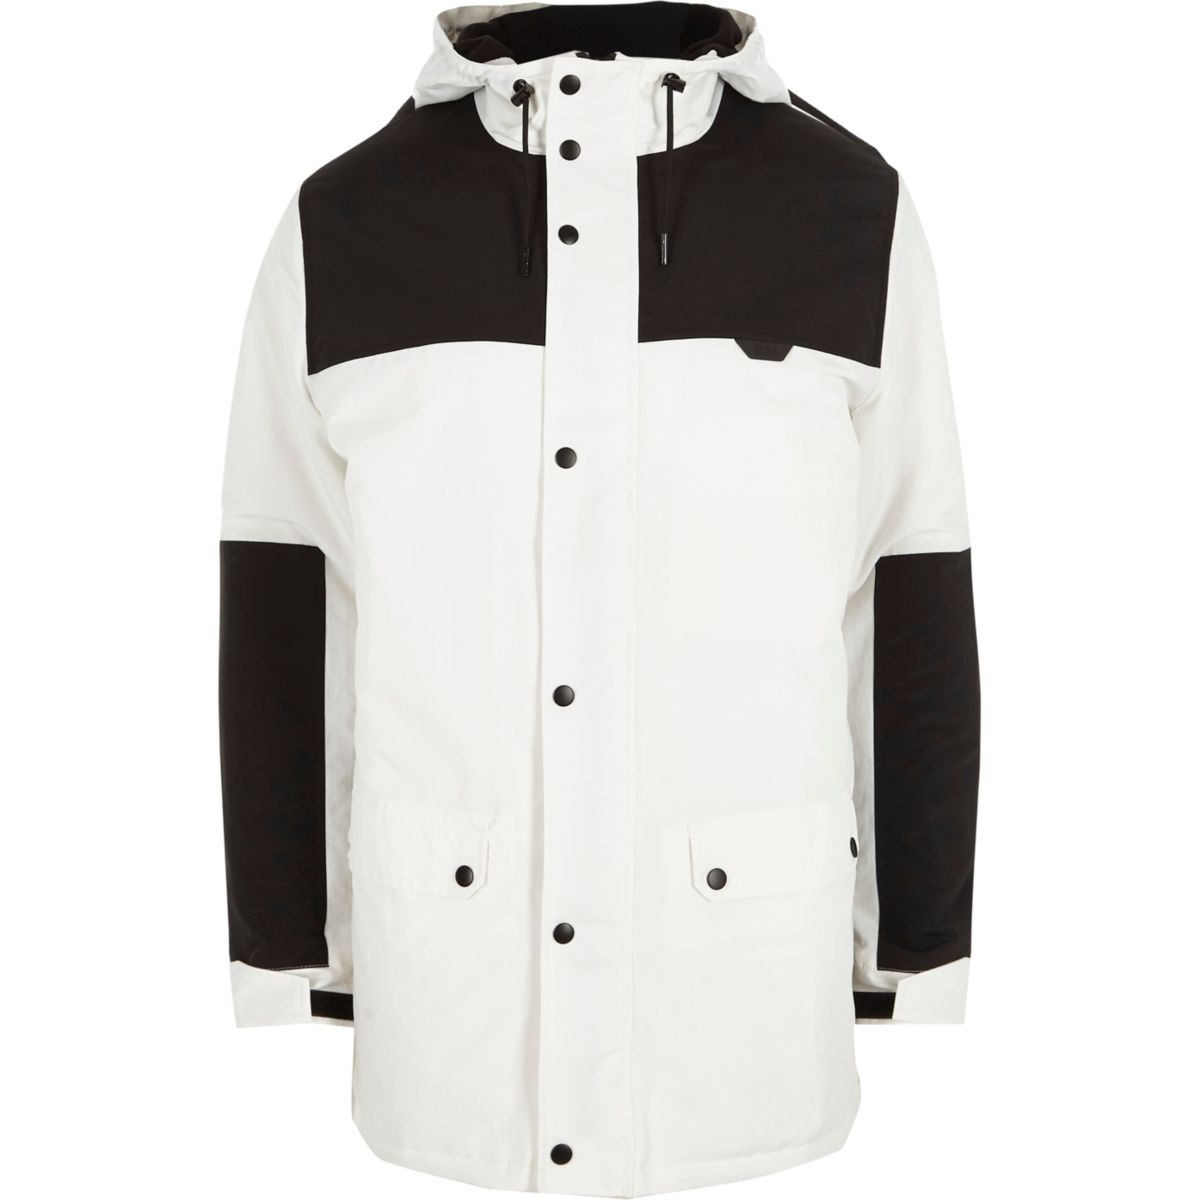 White and black color block hooded coat